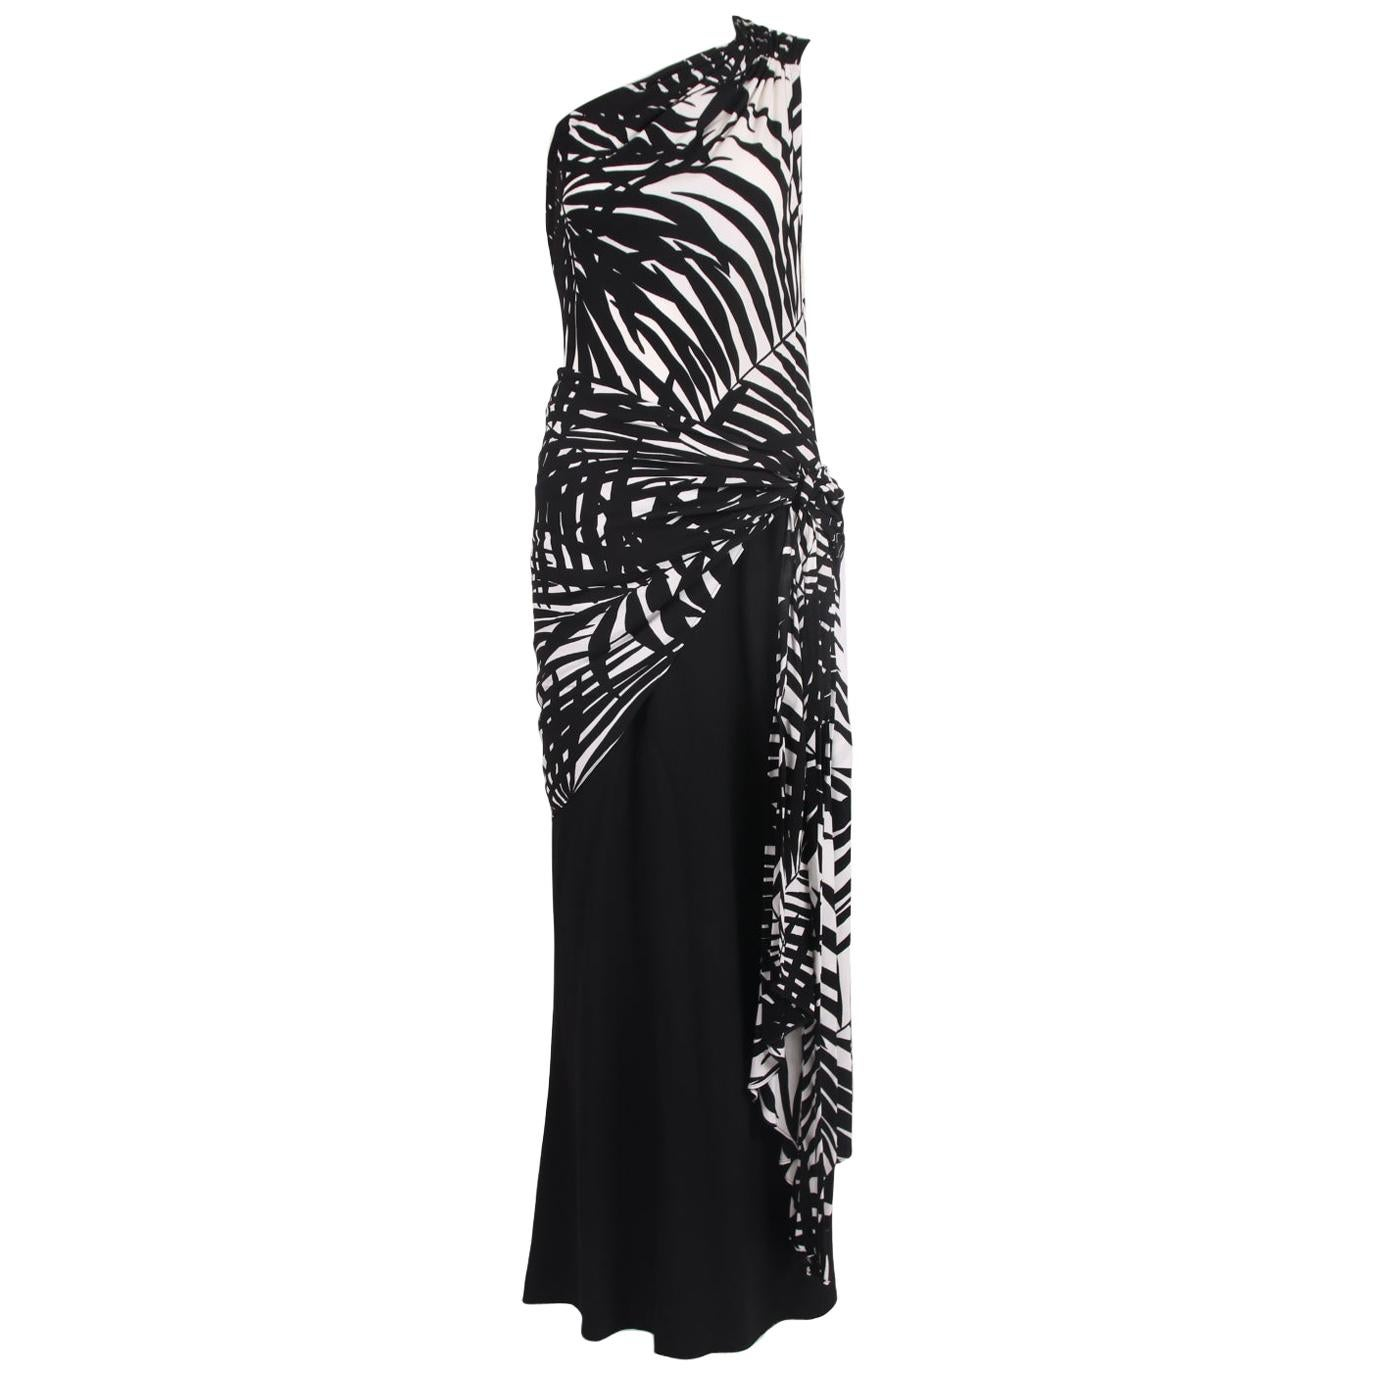 Yves Saint Laurent Black & White Leaf Print Single Shoulder Gown